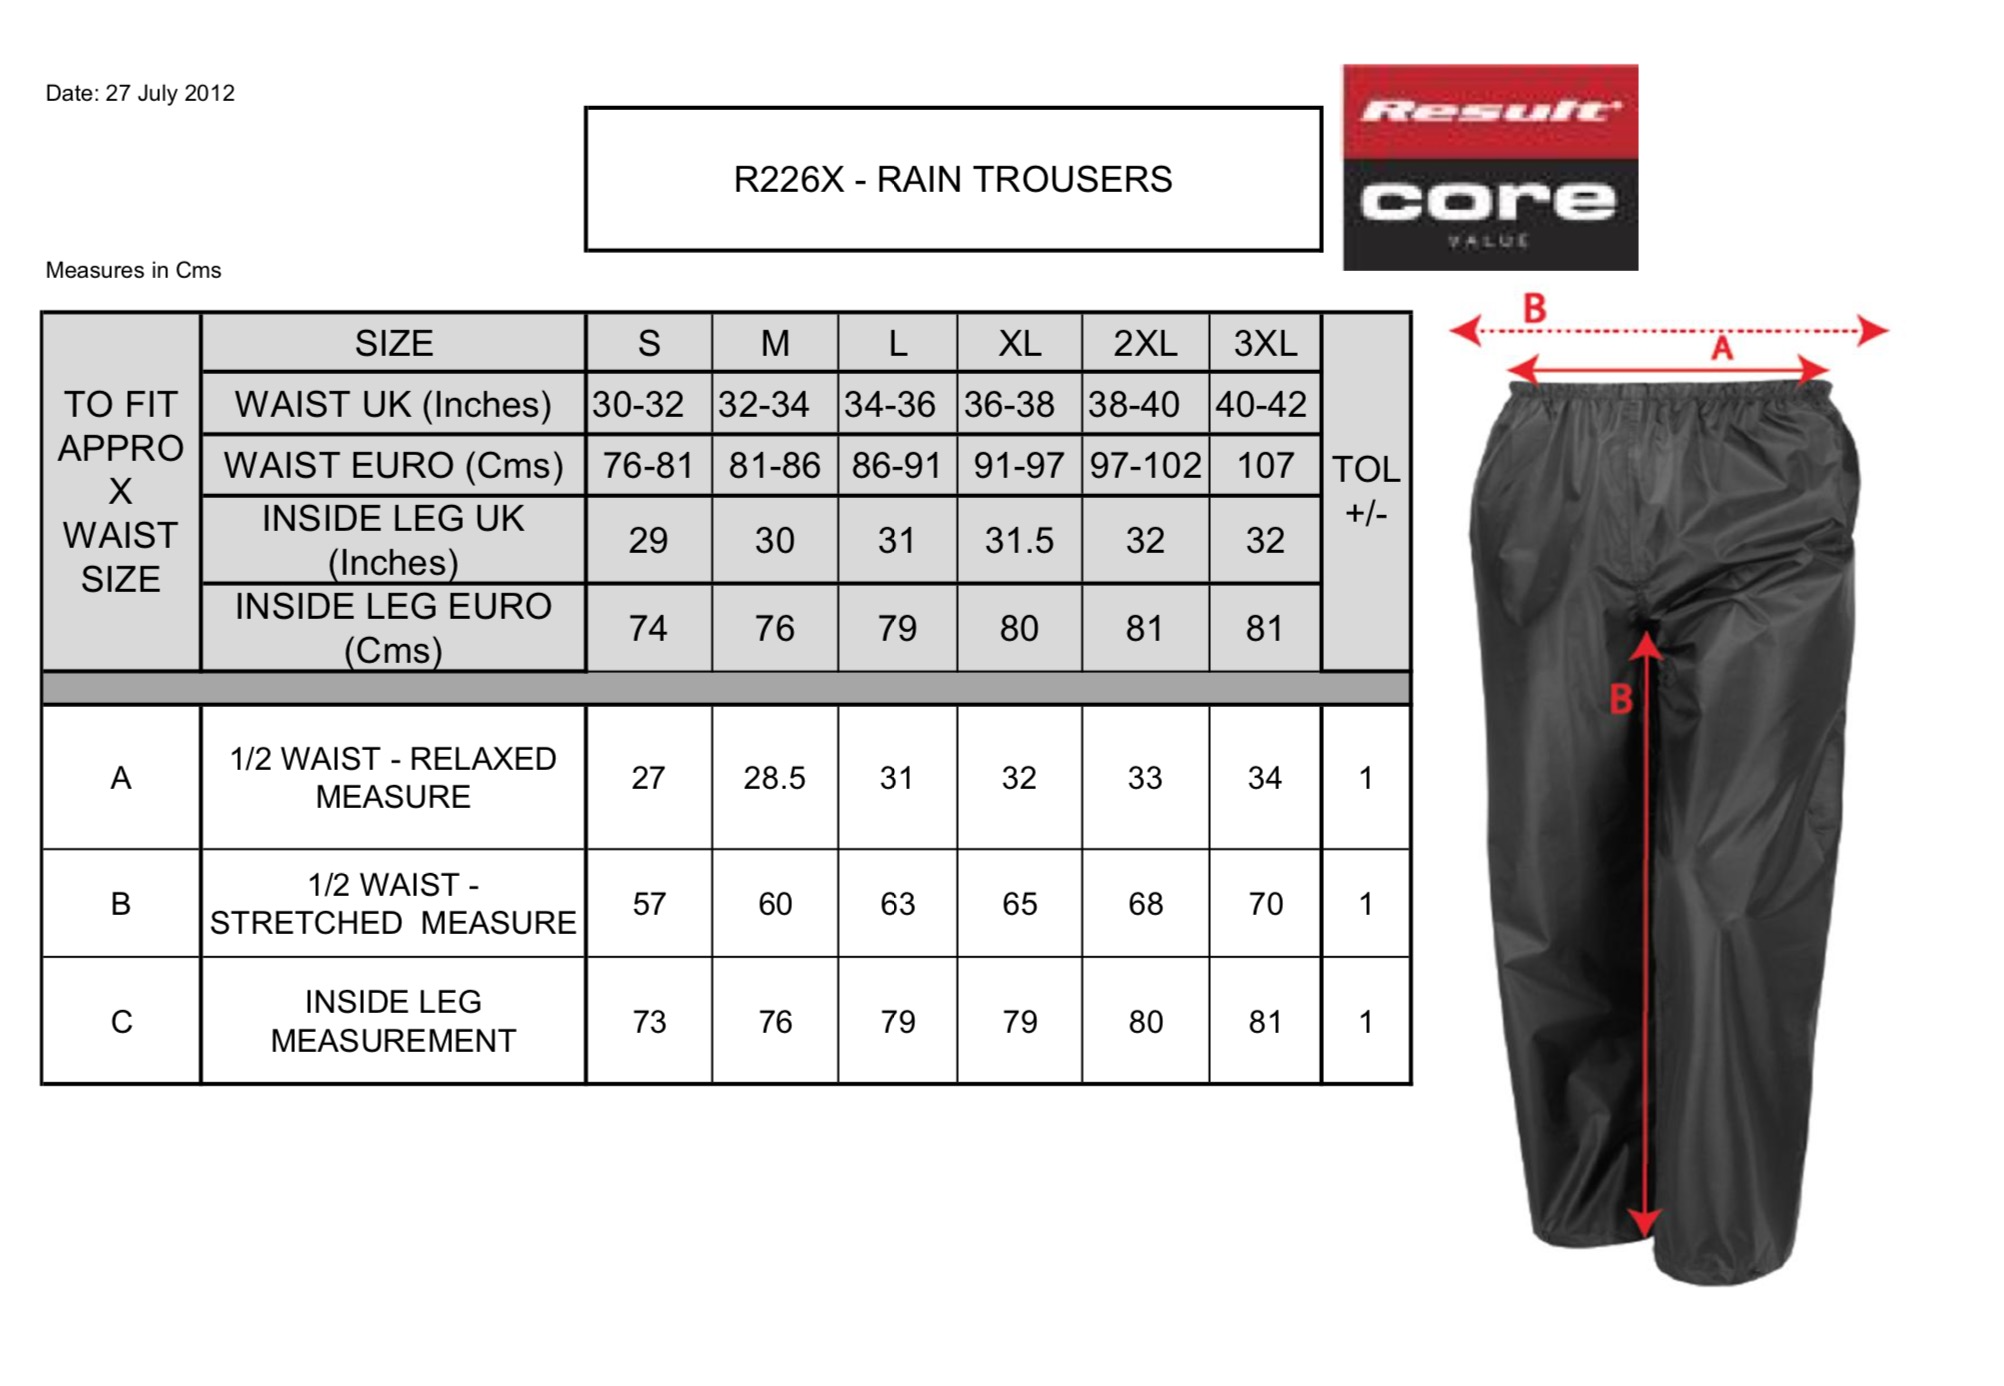 Result: StormDri Trousers R226X